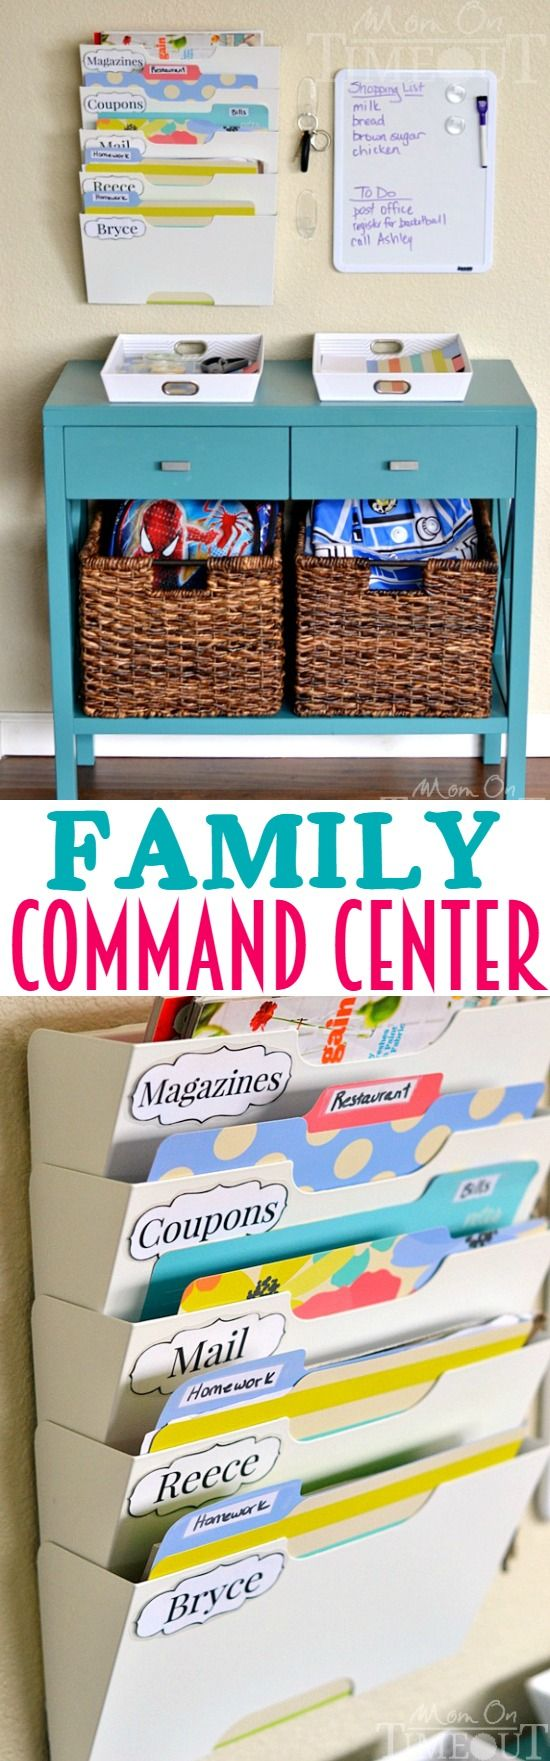 Banish the clutter and get the whole family organized with this DIY Family Command Center!   MomOnTimeout.com